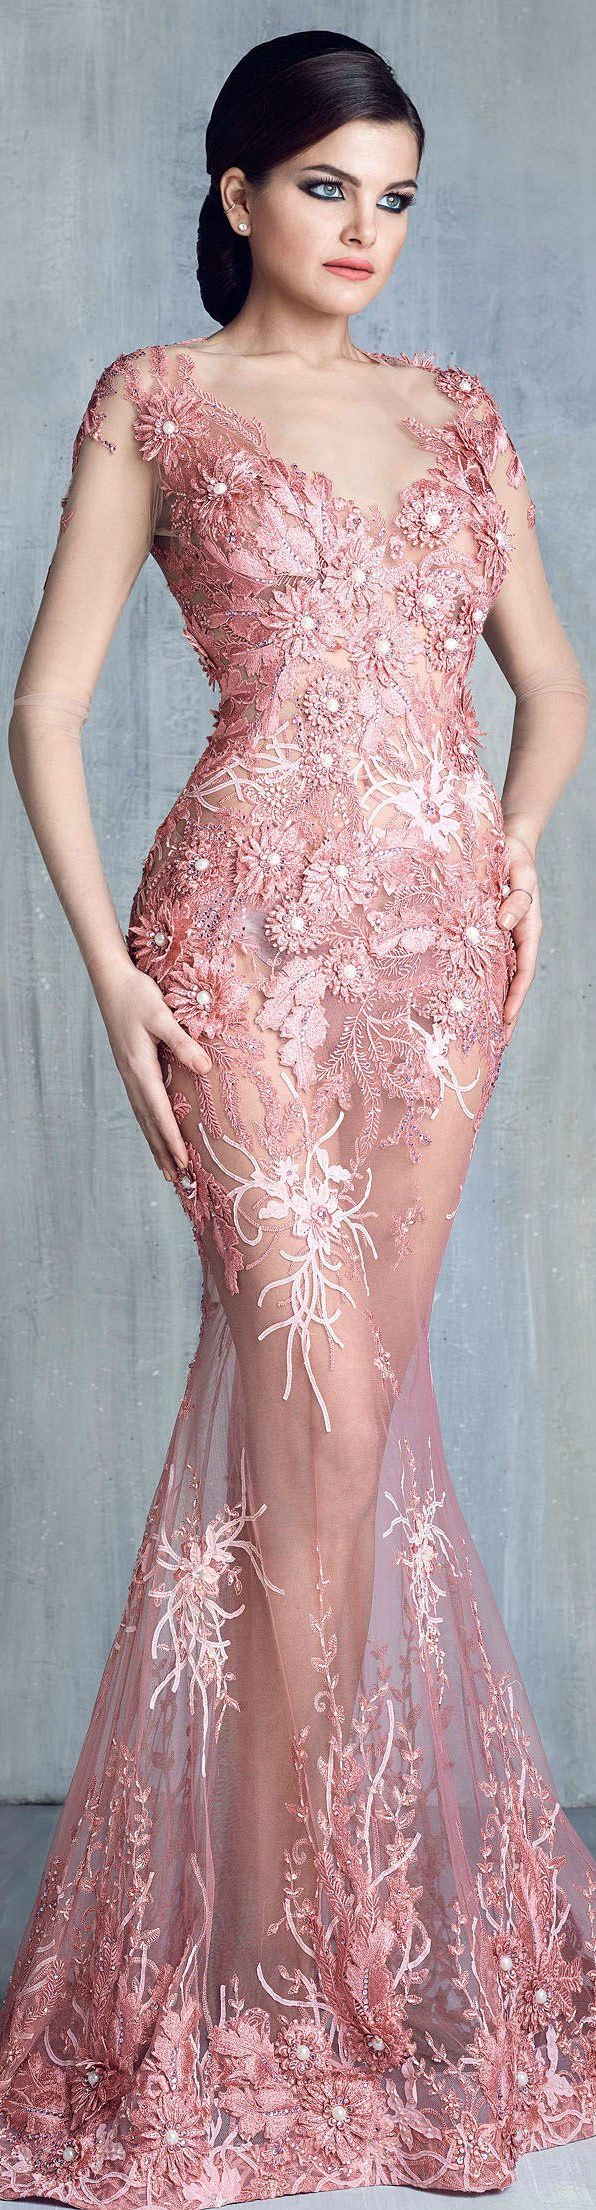 67 best CROWN Group images on Pinterest | High fashion, Beautiful ...